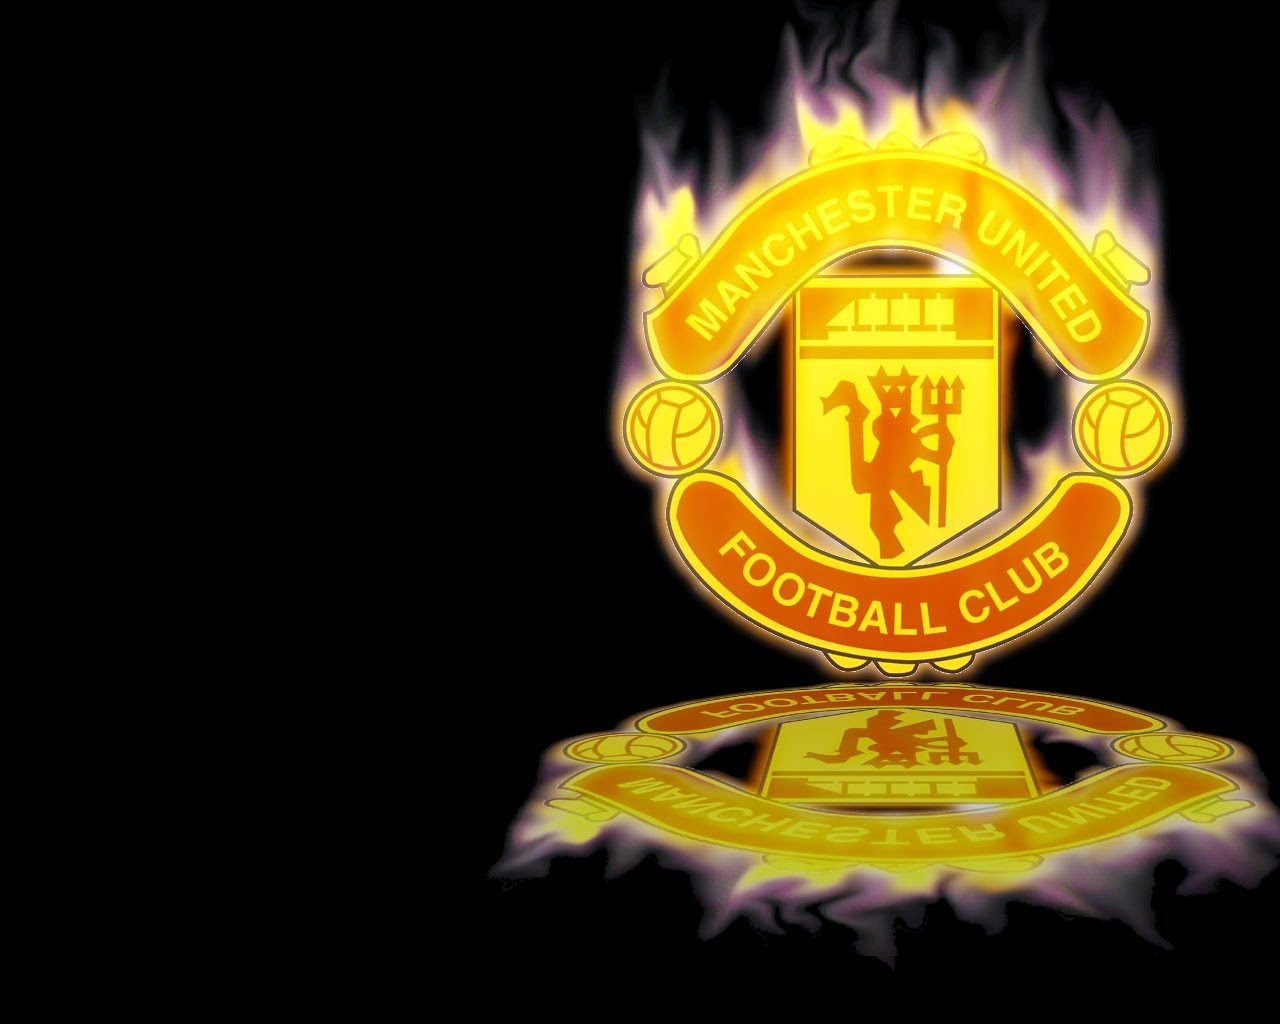 manchester united football club wallpaper football wallpaper hd